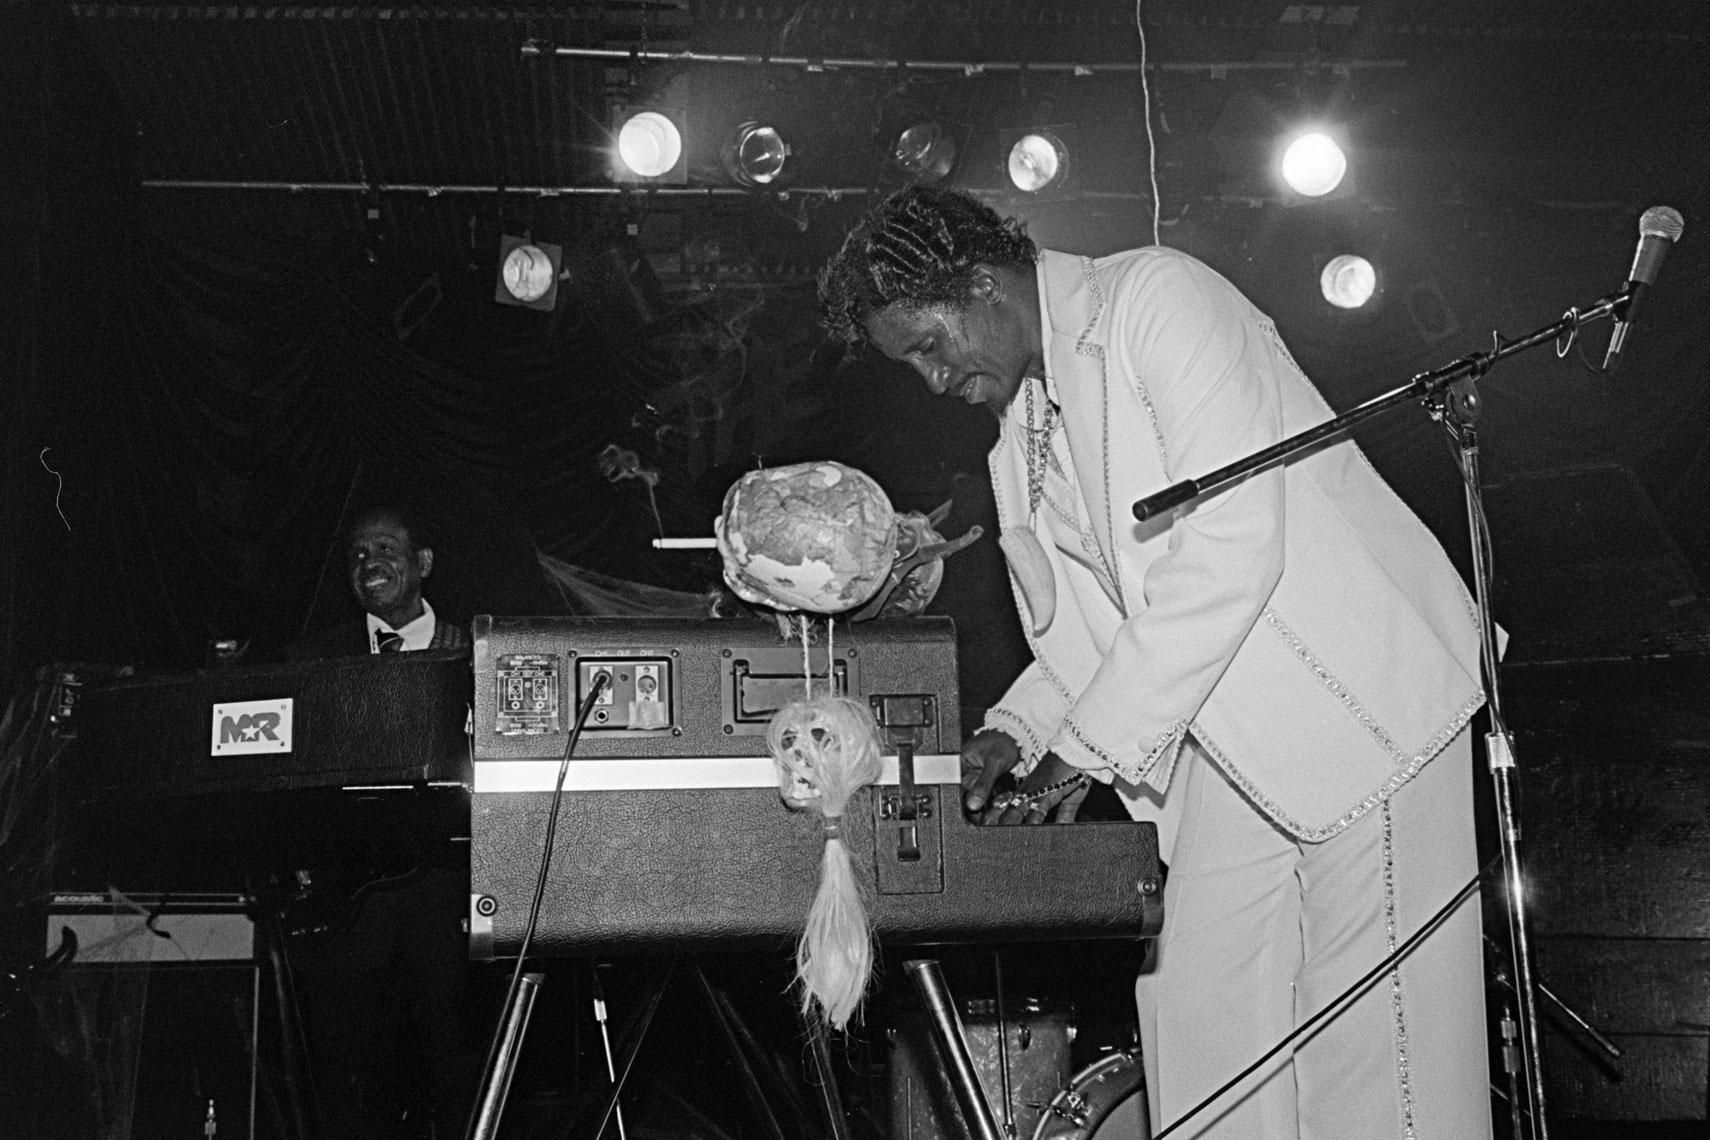 070_077_Screamin-Jay-Hawkins_Irving-Plaza